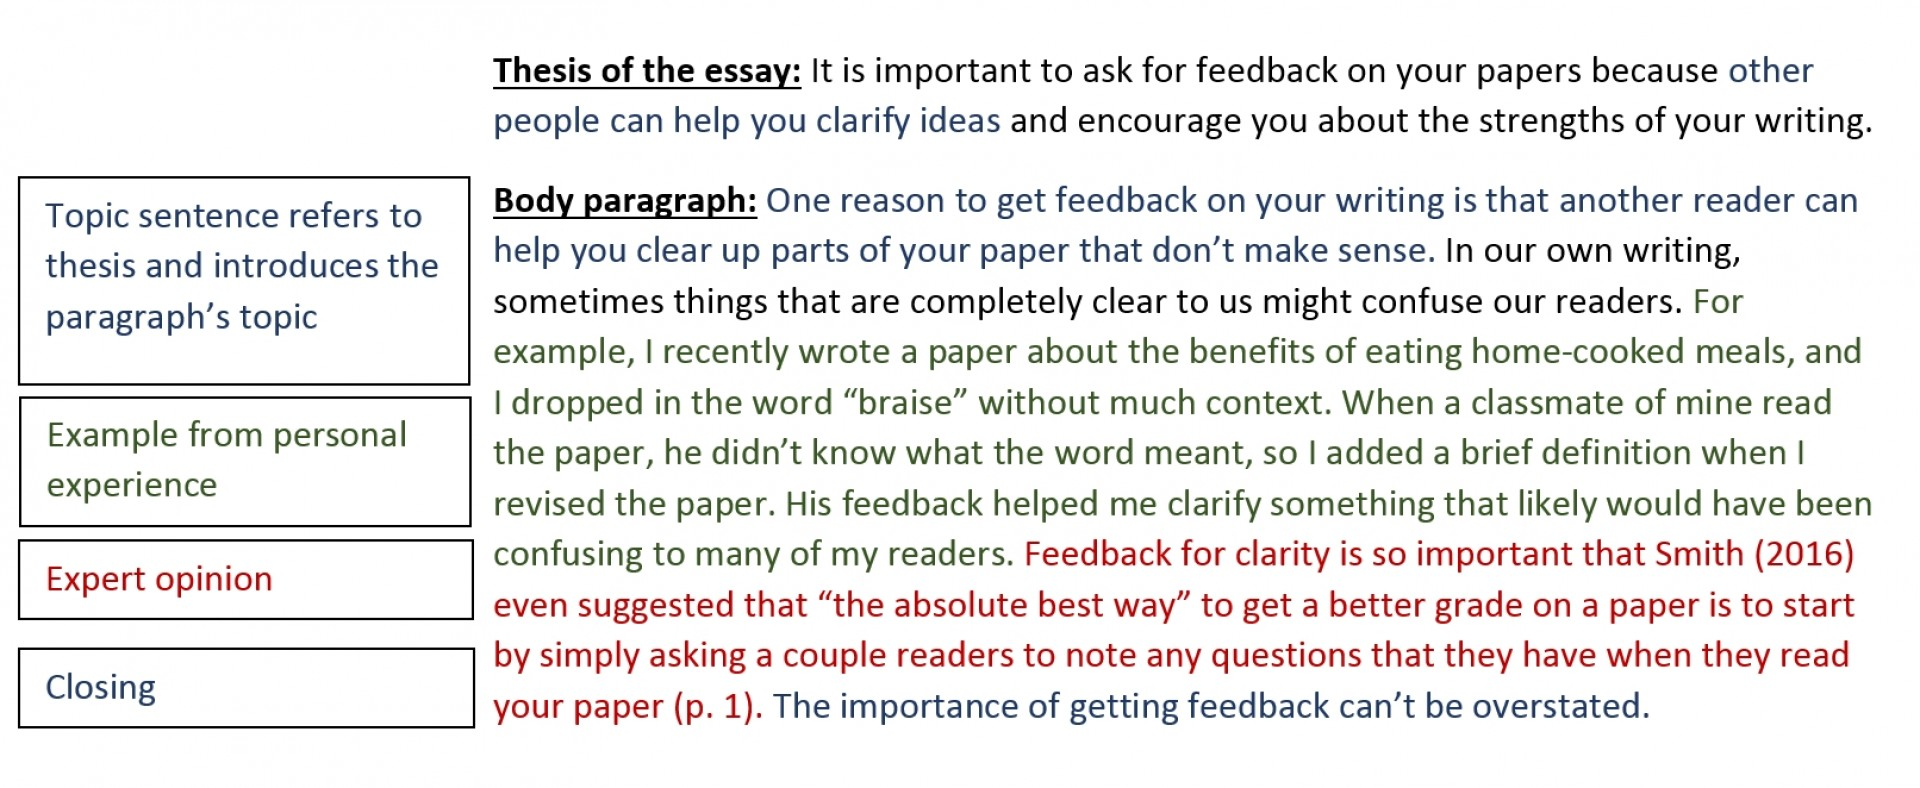 007 Example Of An Introduction Paragraph For Research Paper Body Paragraphs Writing Your Guides At Eastern With Regard Frightening A In Pdf 1920